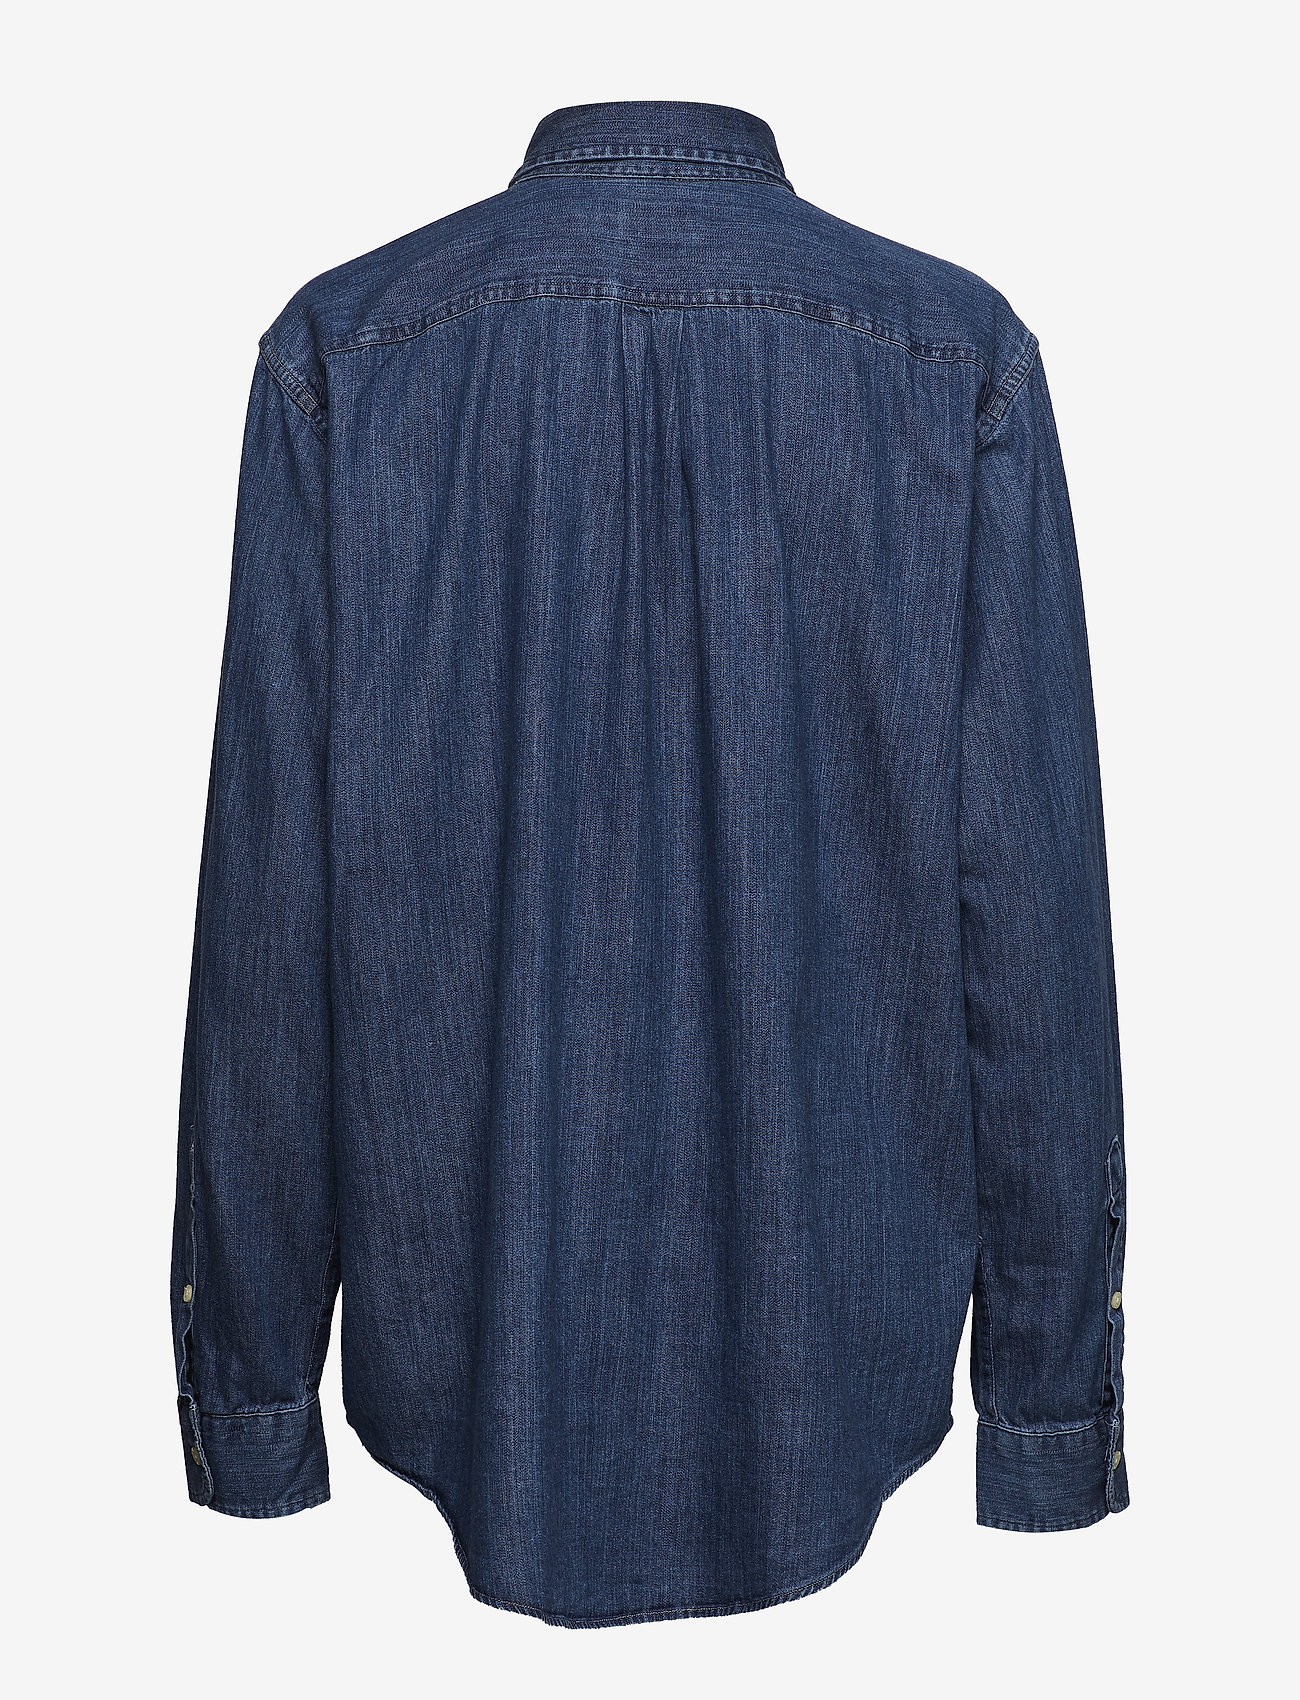 Polo Ralph Lauren Chambray Big Shirt - Blouses & Shirts